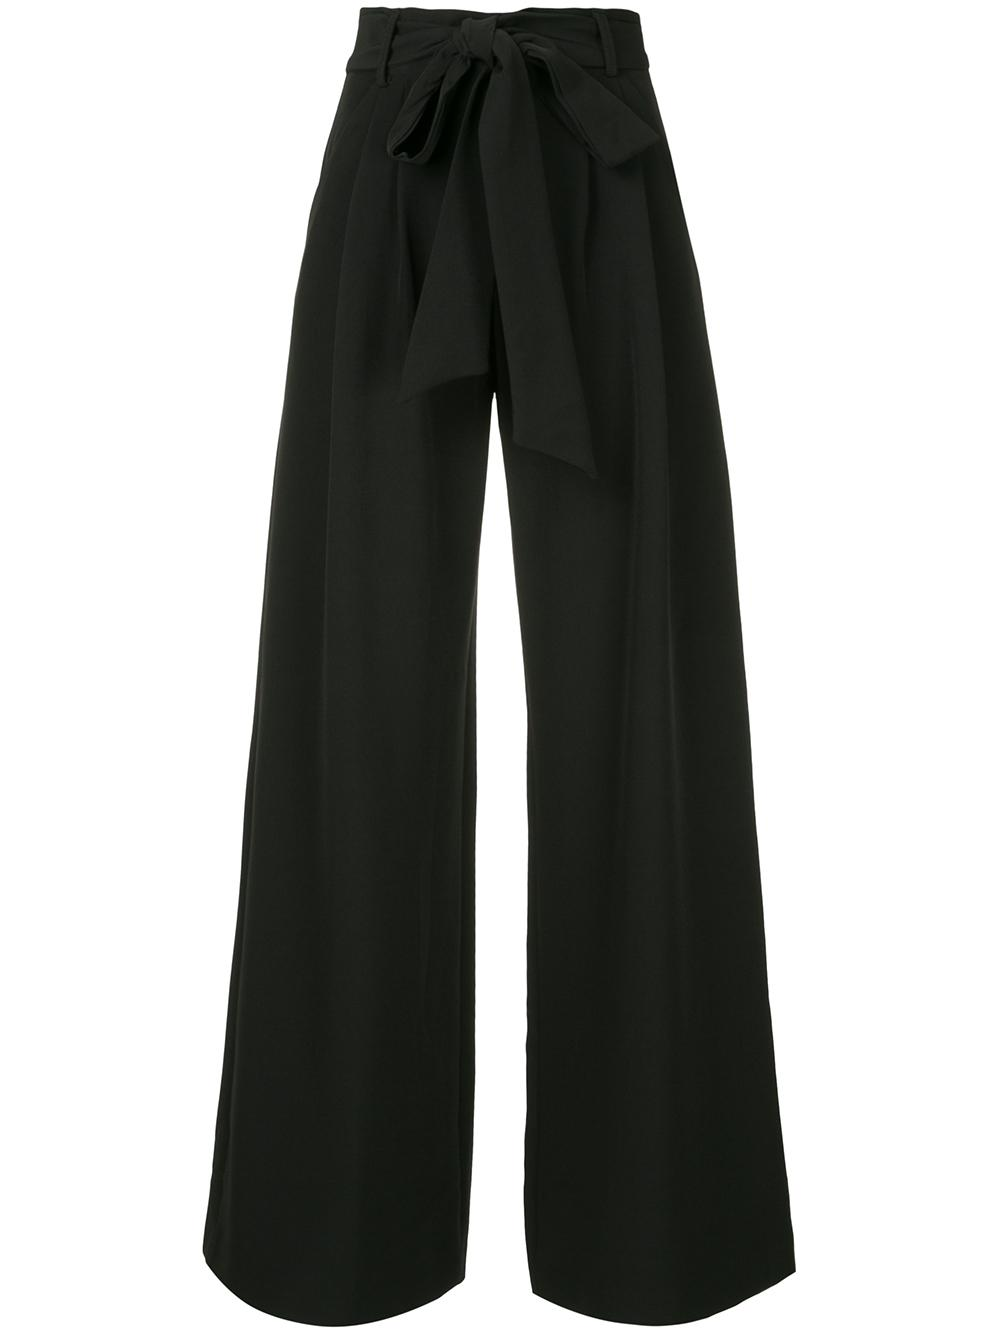 Natalie Tie Waist Wide Leg Trouser Item # 990IC03955